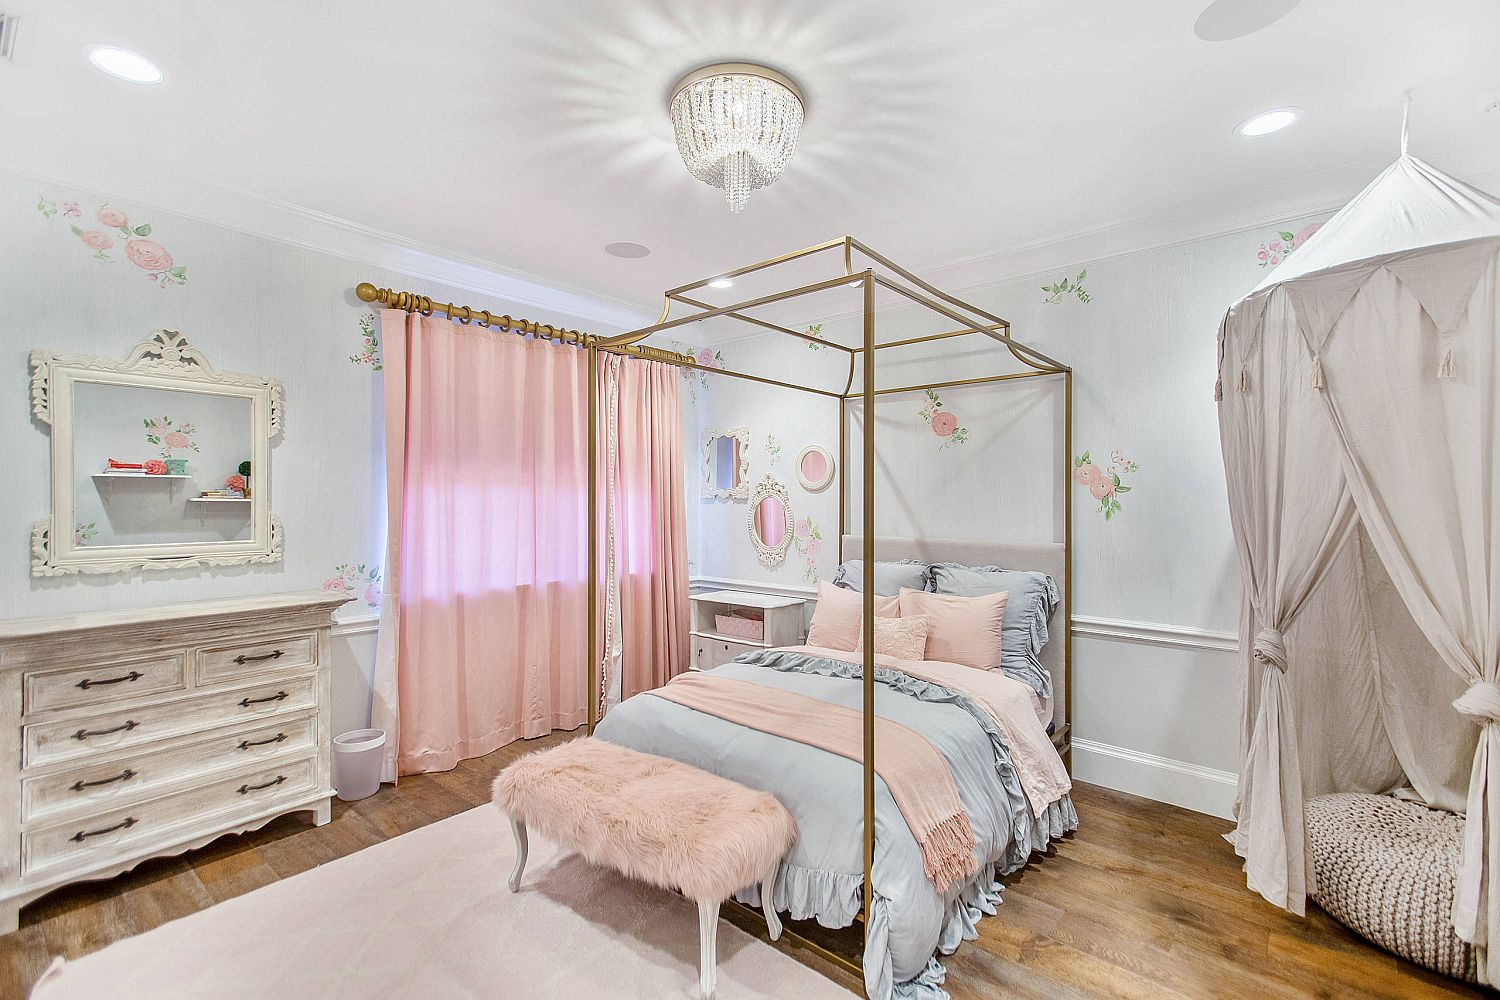 Pastel-pinks-and-blues-along-with-lovely-prints-add-color-to-the-delightful-shabby-chic-bedroom